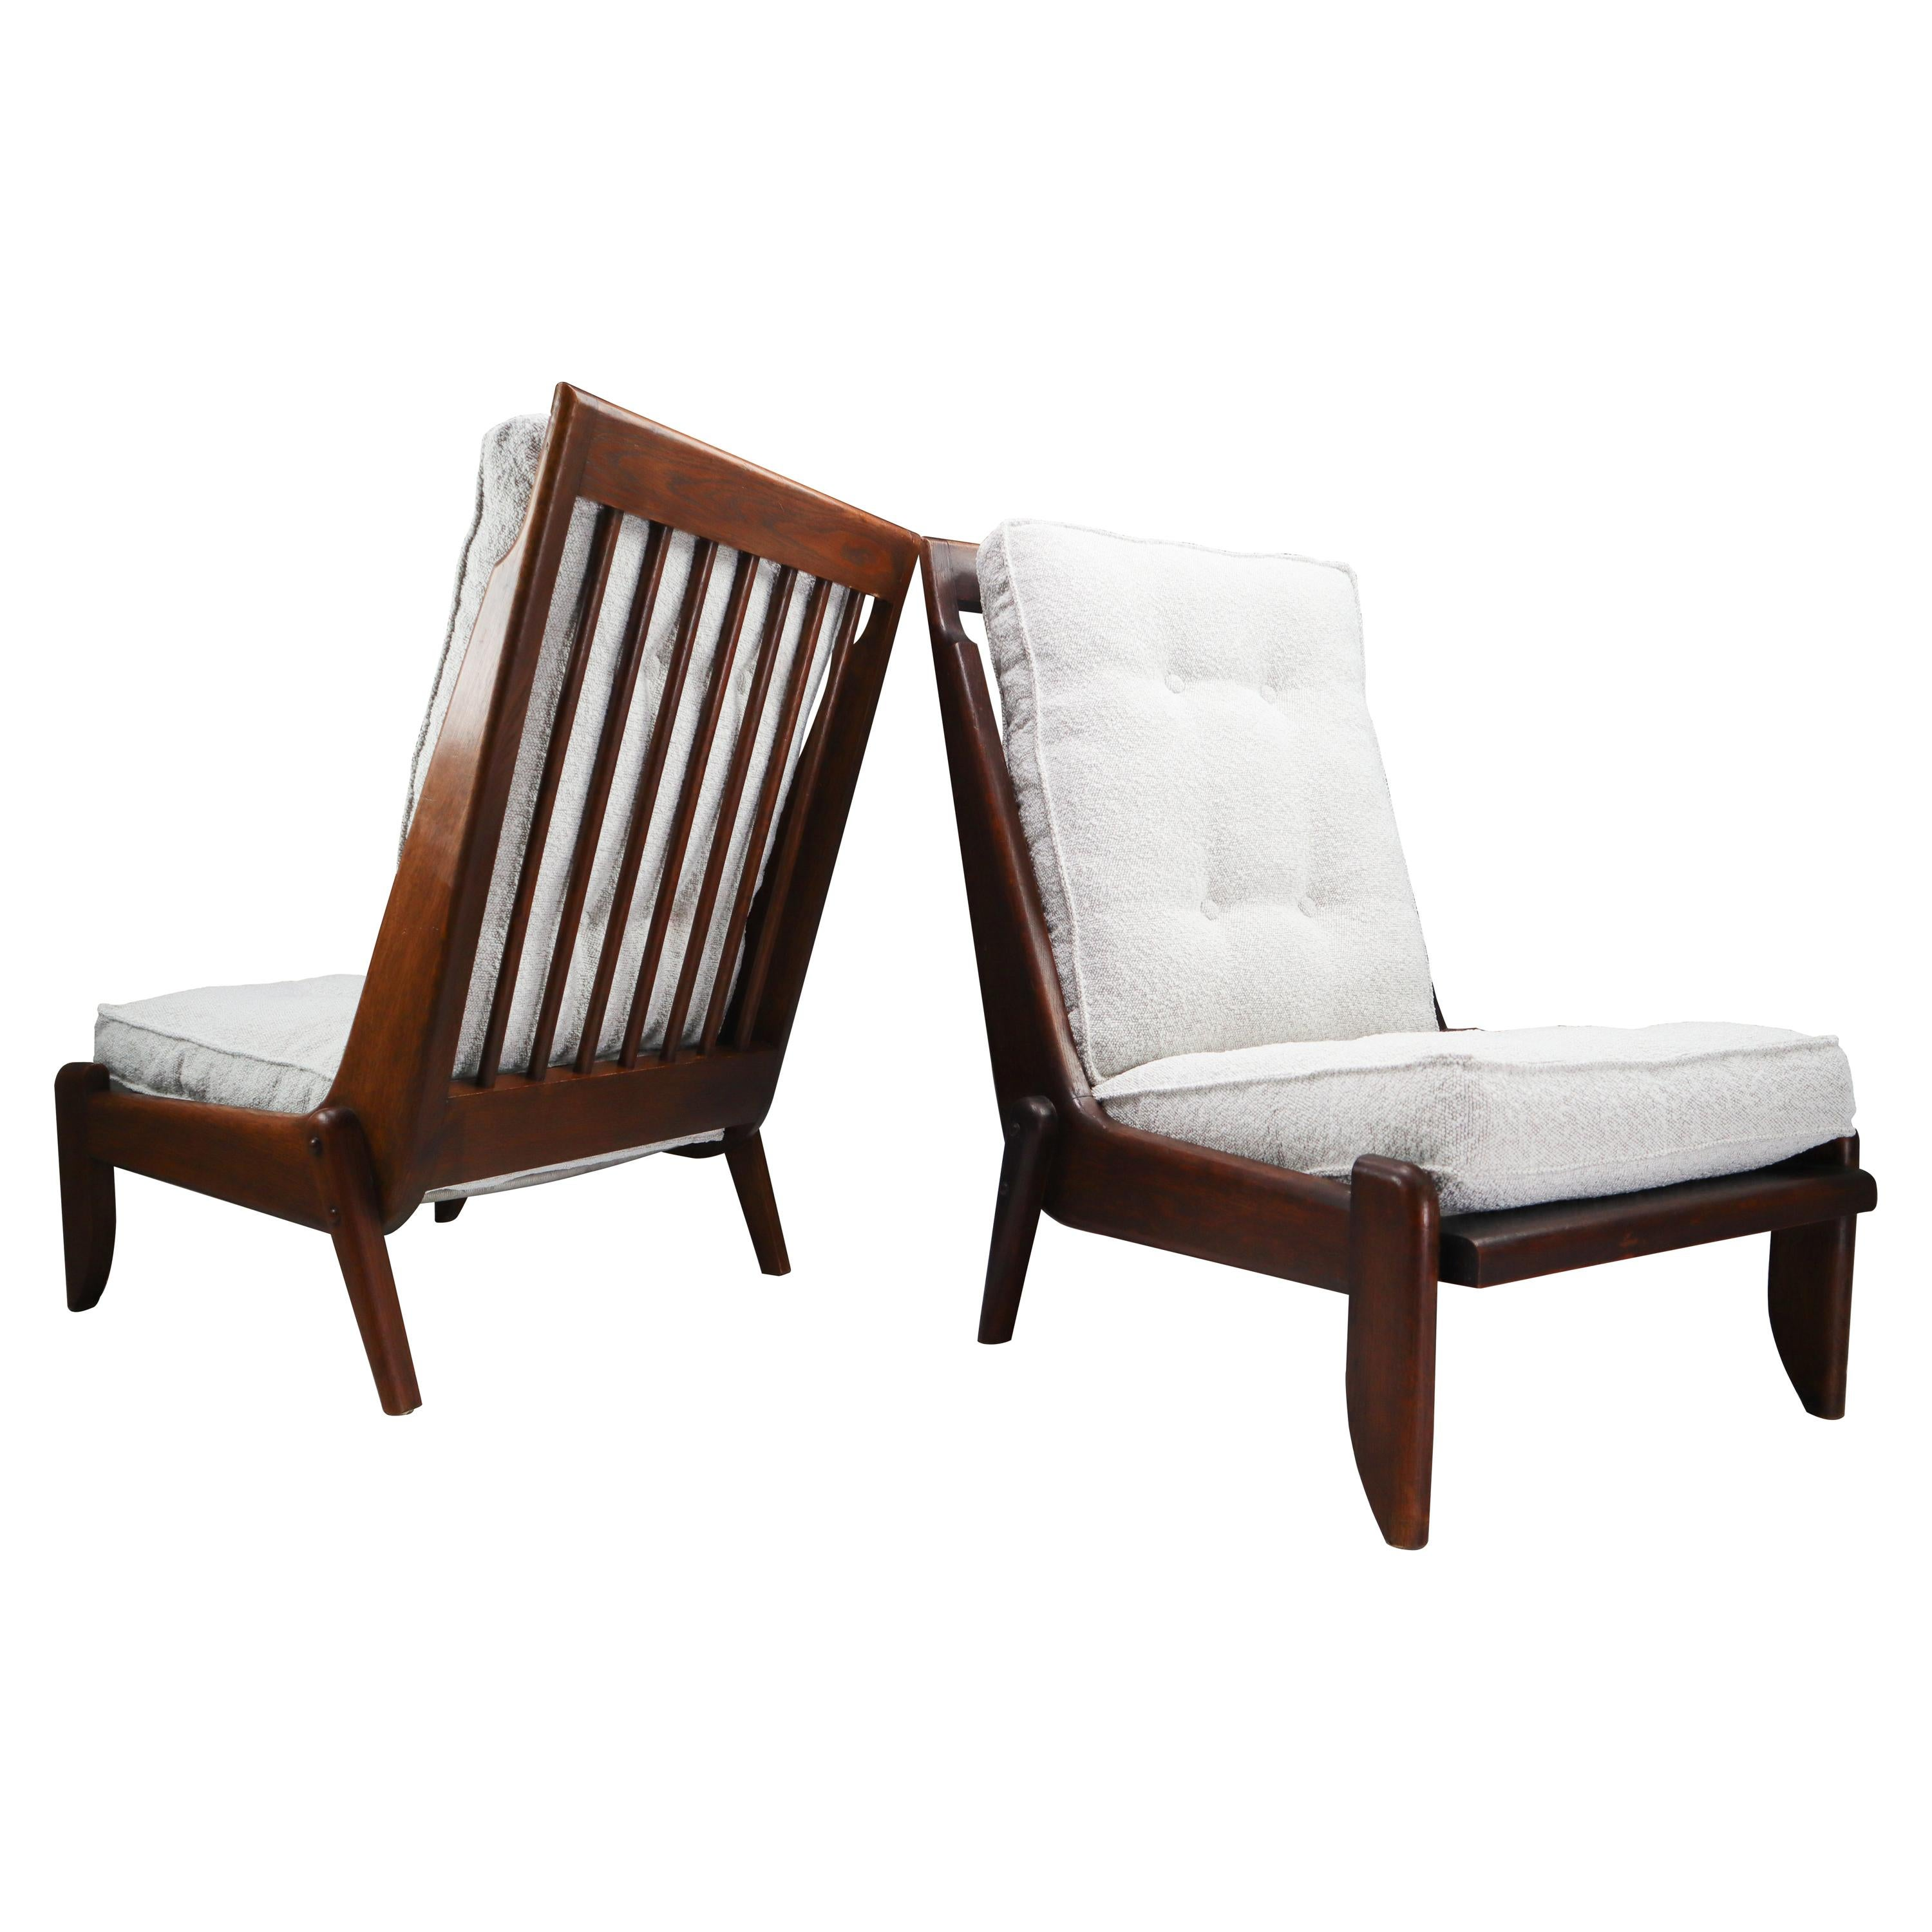 Guillerme et Chambron Pair Lounge Chairs in Oak and bouclé fabric, France, 1950s